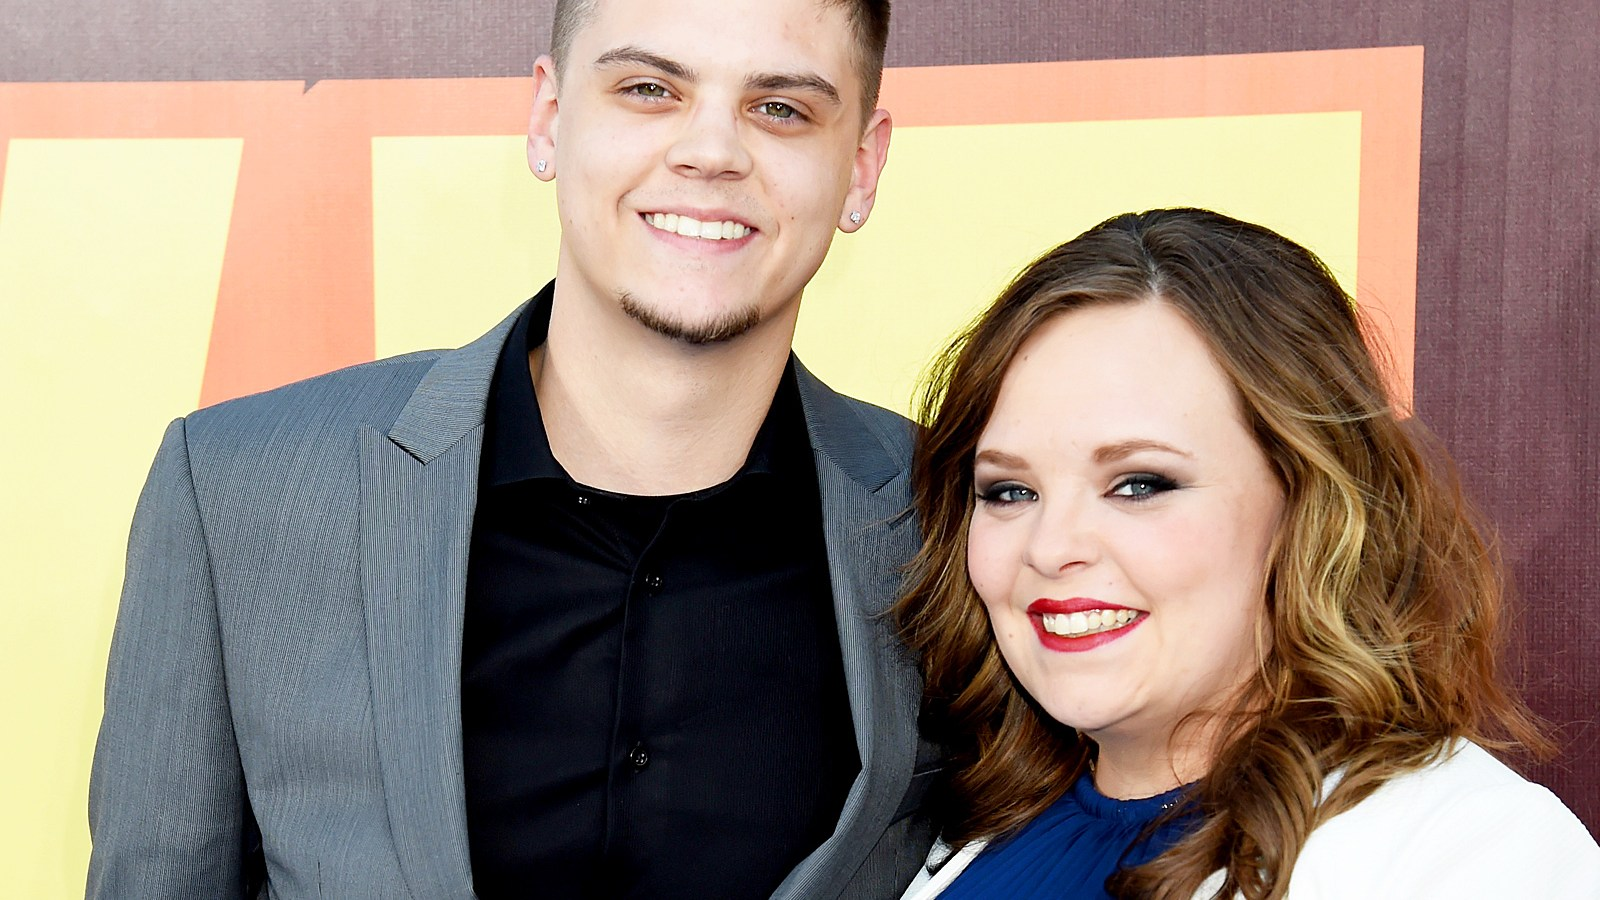 Tyler Baltierra and Catelynn Lowell attend The 2015 MTV Movie Awards in Los Angeles, California.